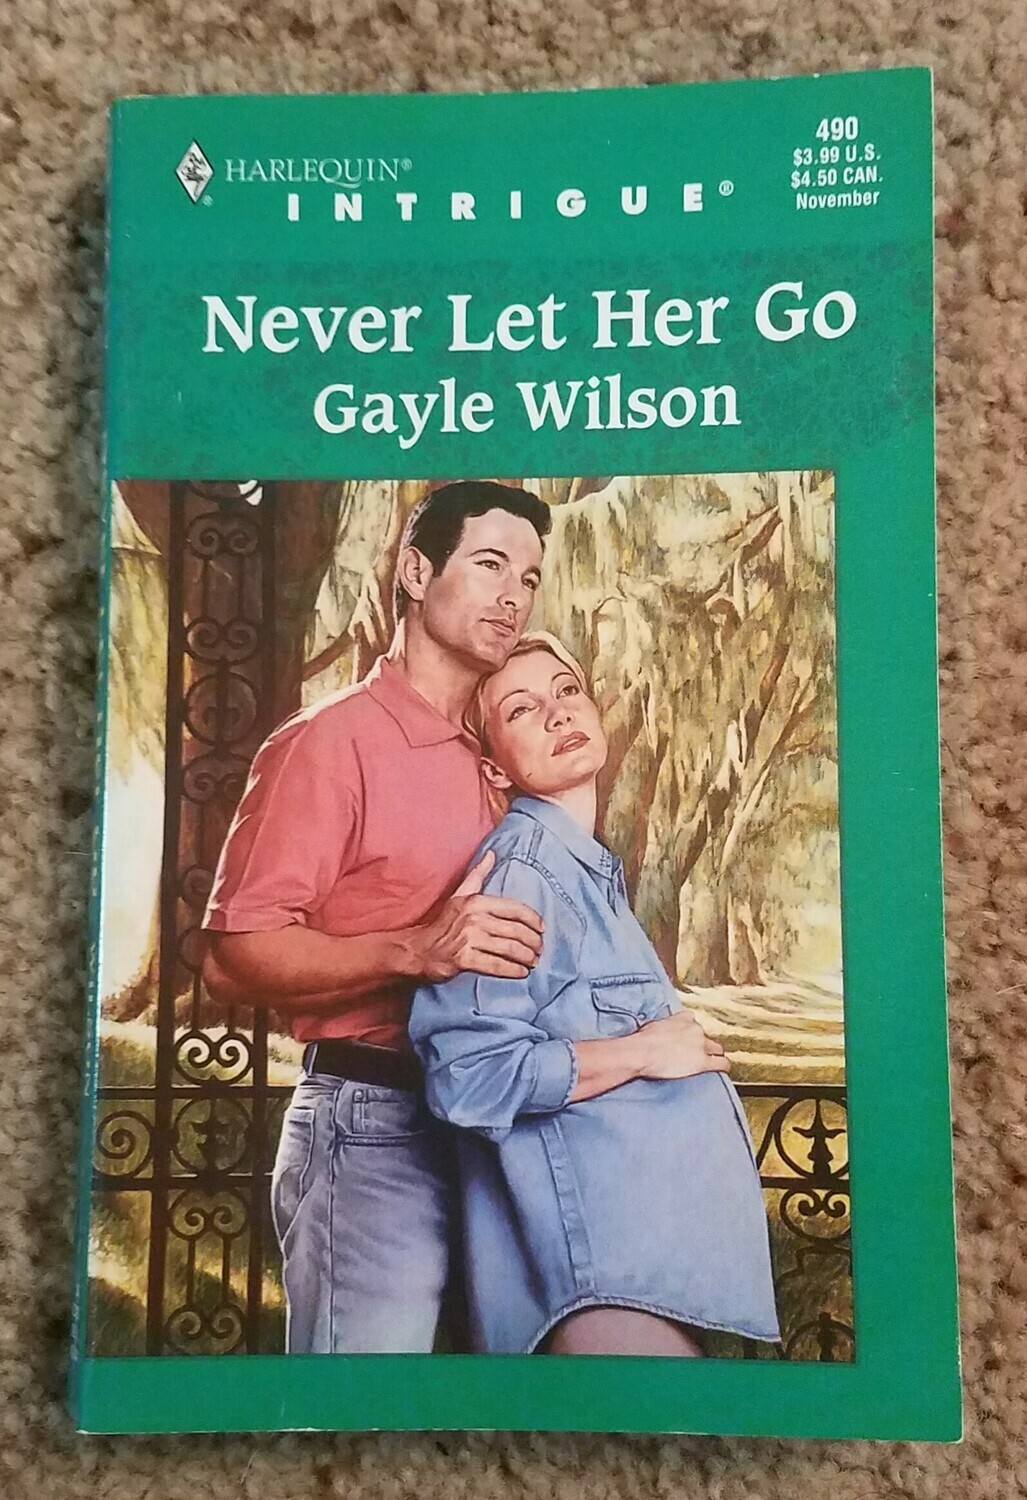 Never Let Her Go by Gayle Wilson